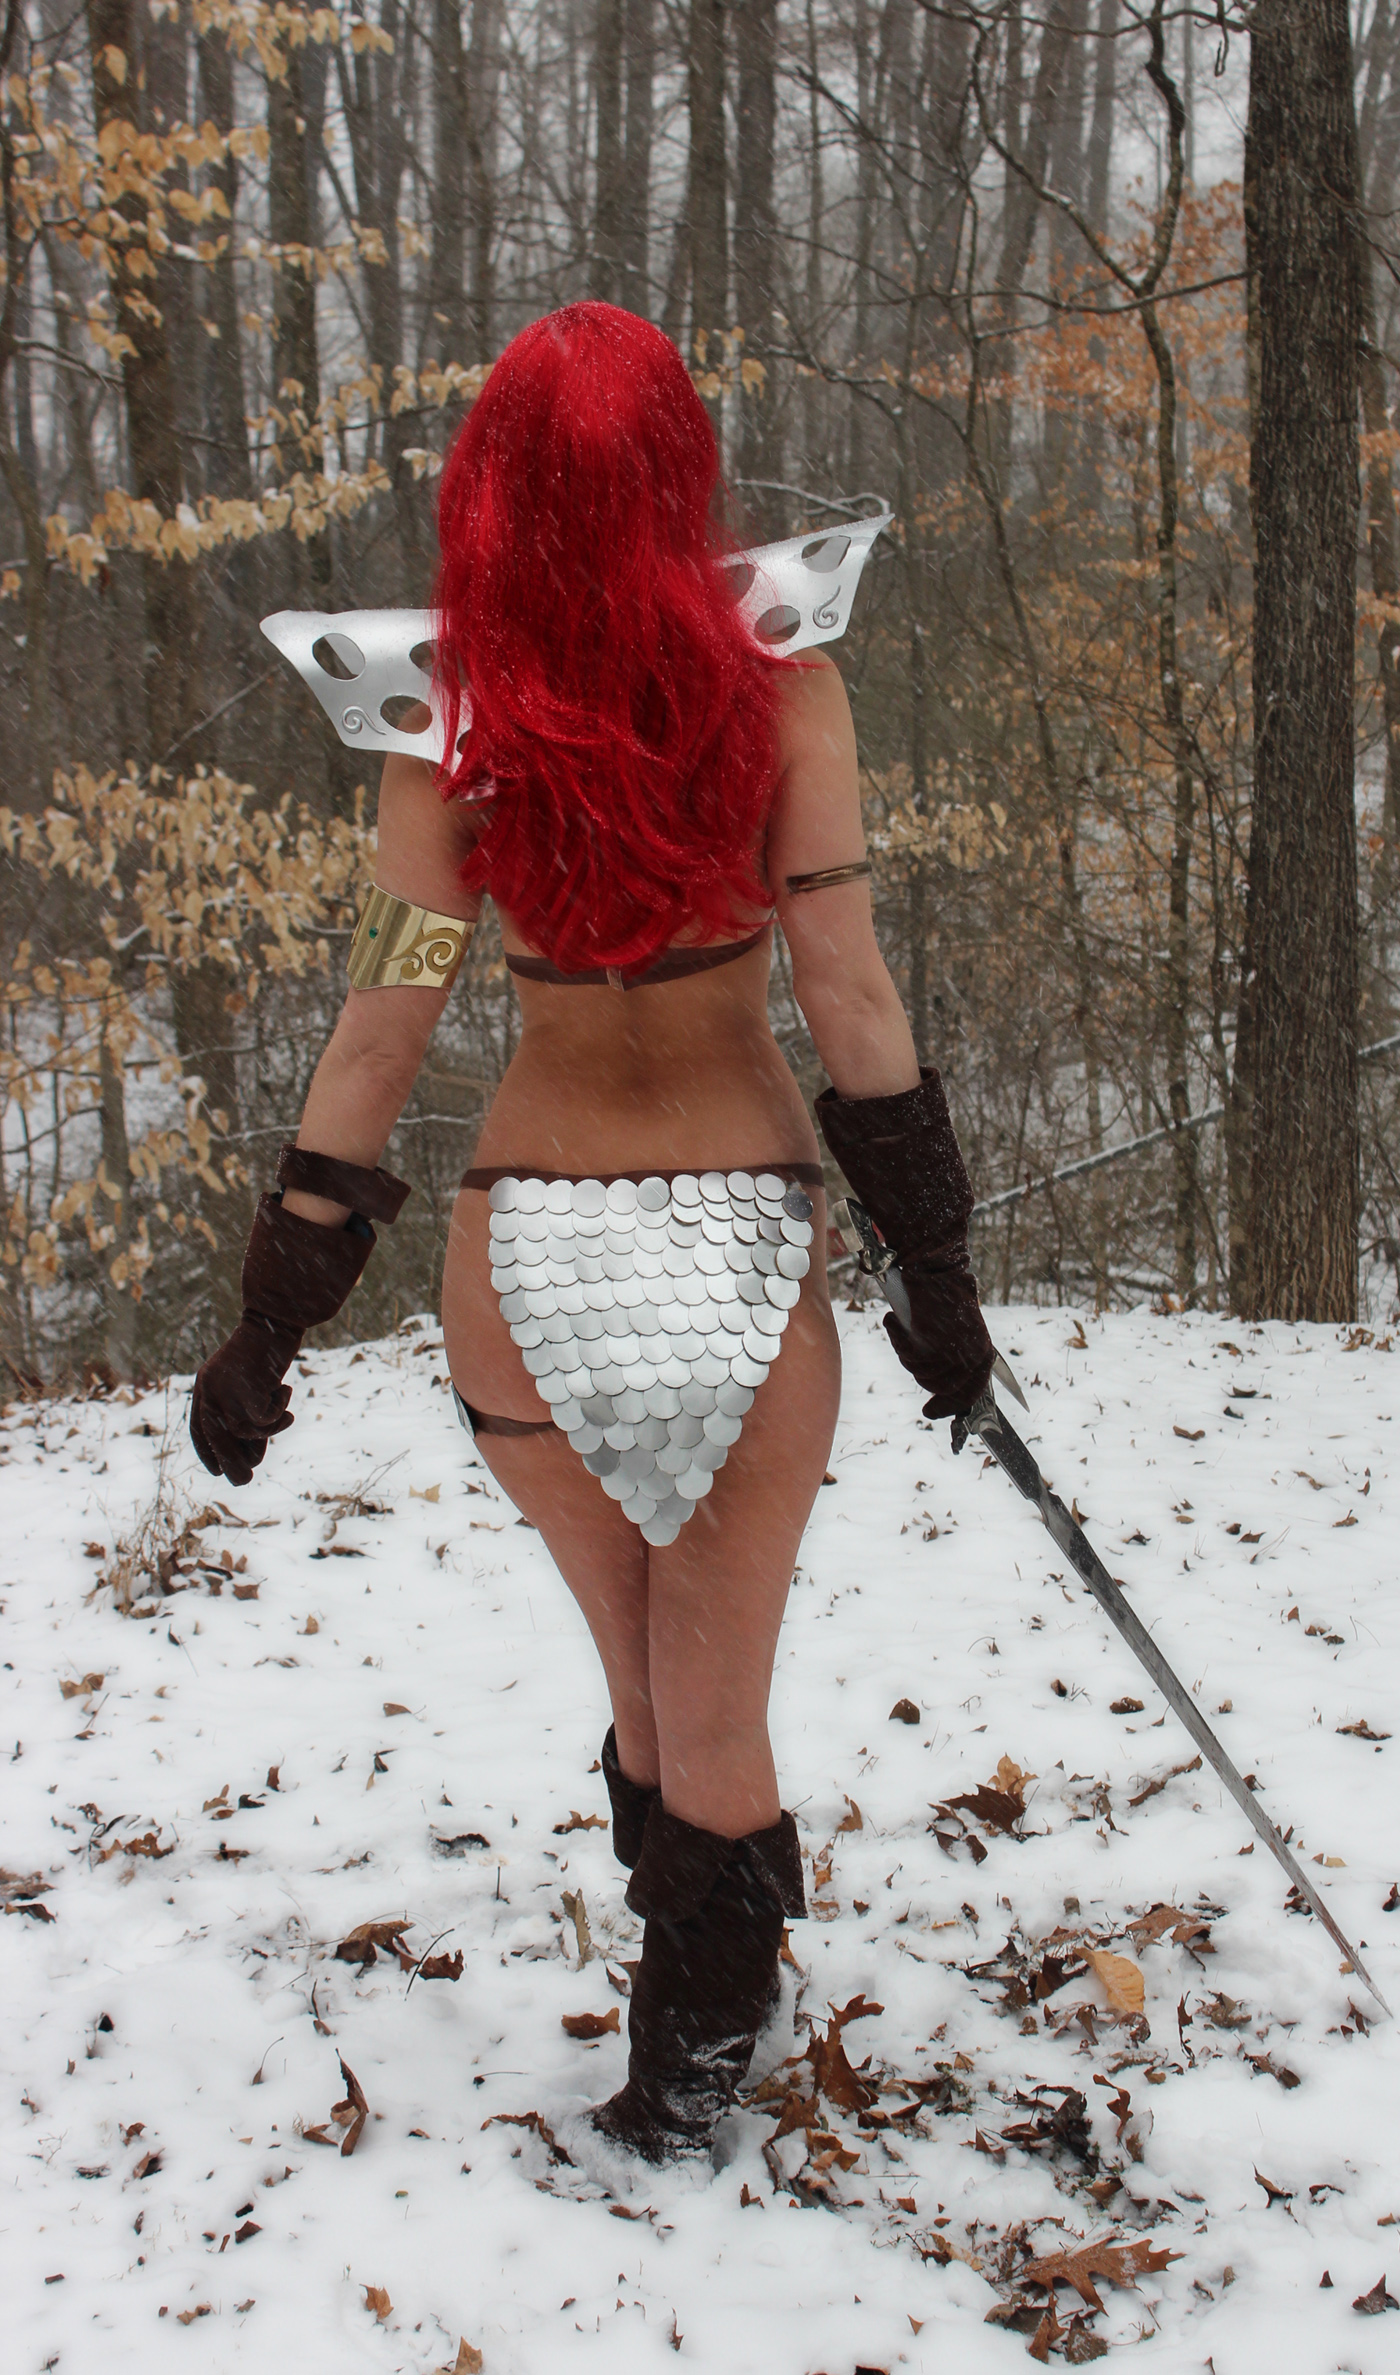 Red Sonja in the snow 2 by AlisaKiss